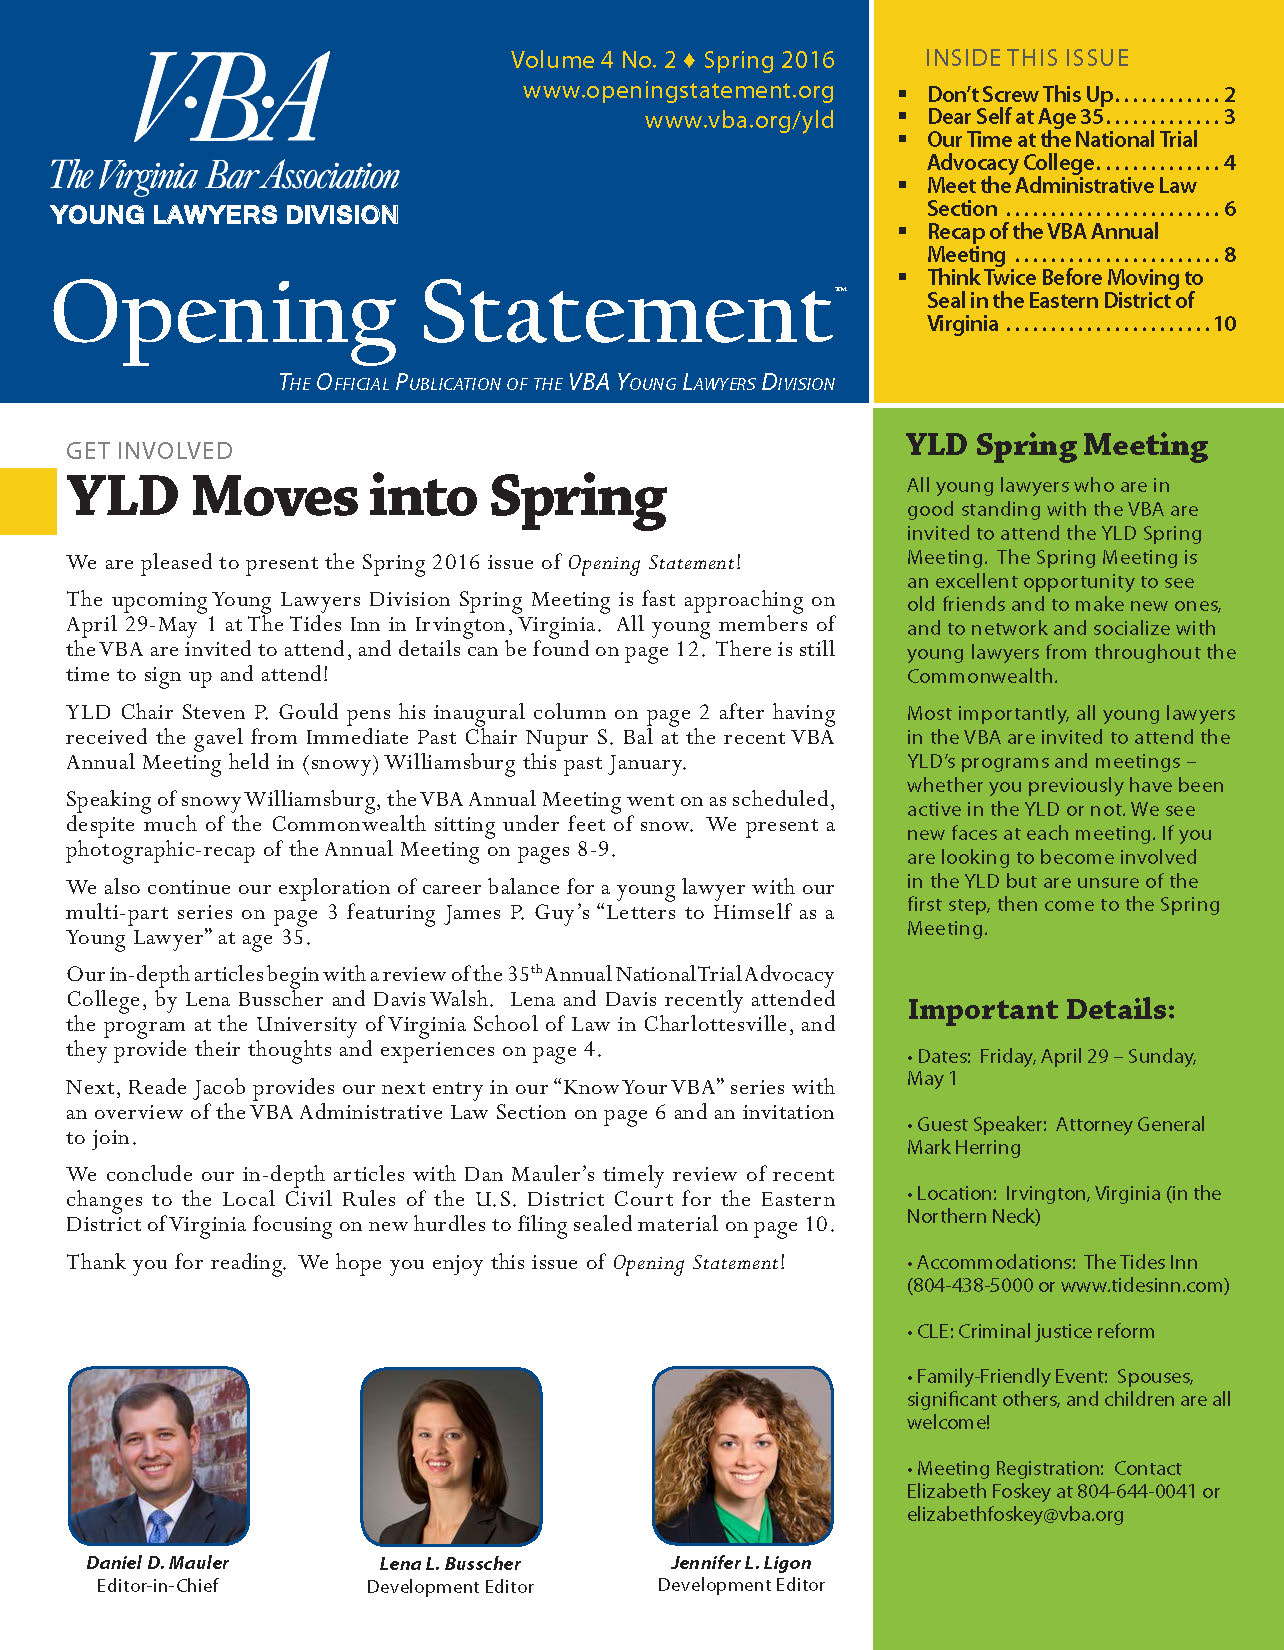 Opening Statement Vol. 4, No. 2, Spring 2016